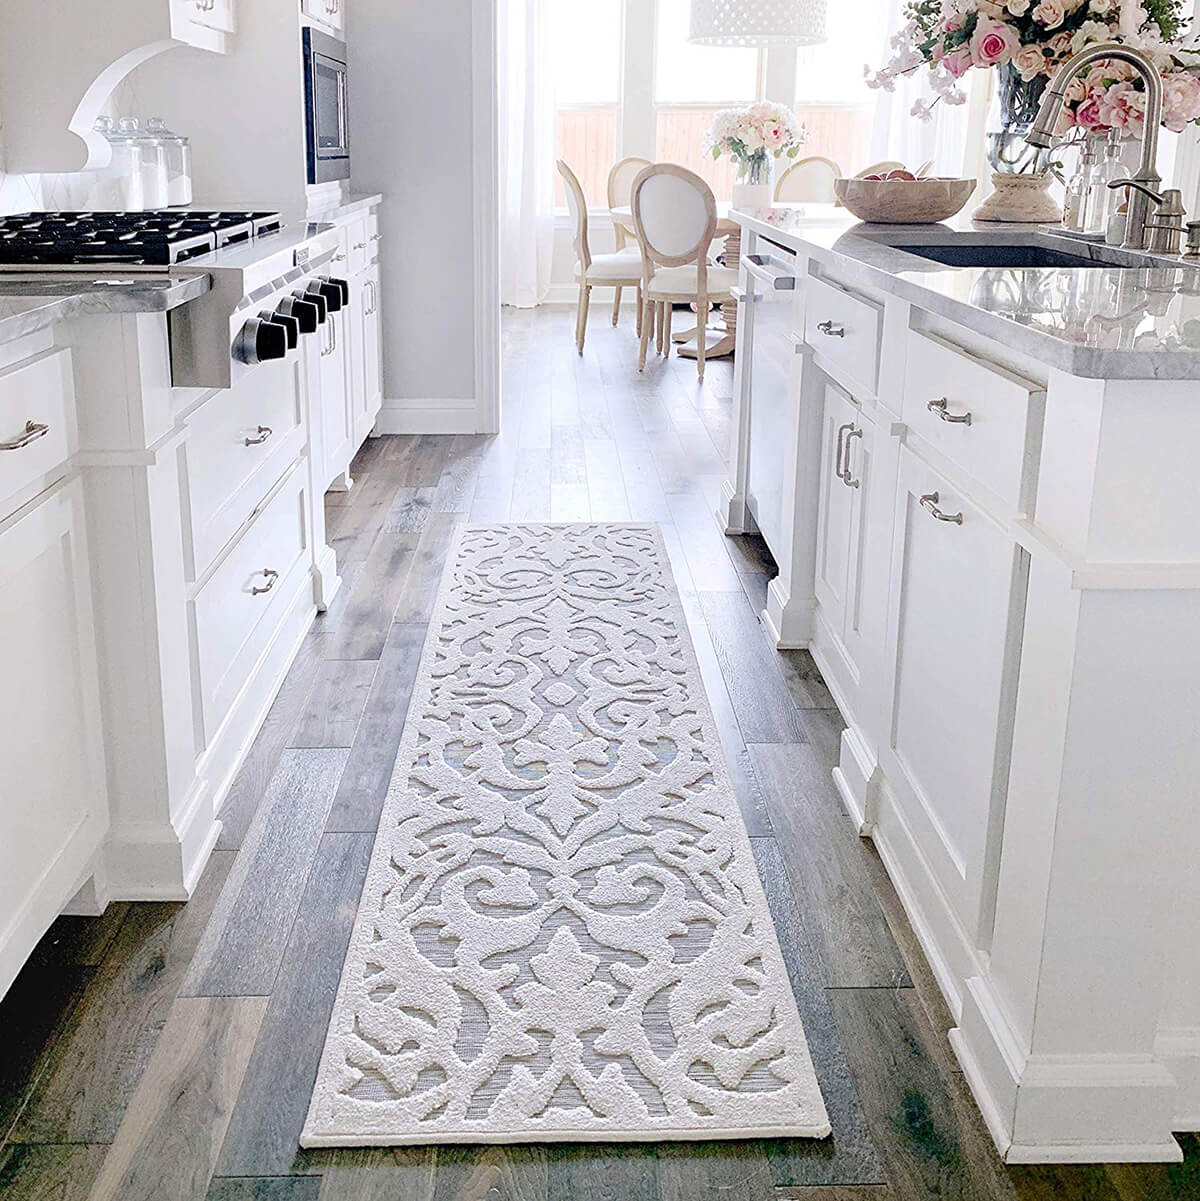 Durable Lace-Patterned Runner Rug